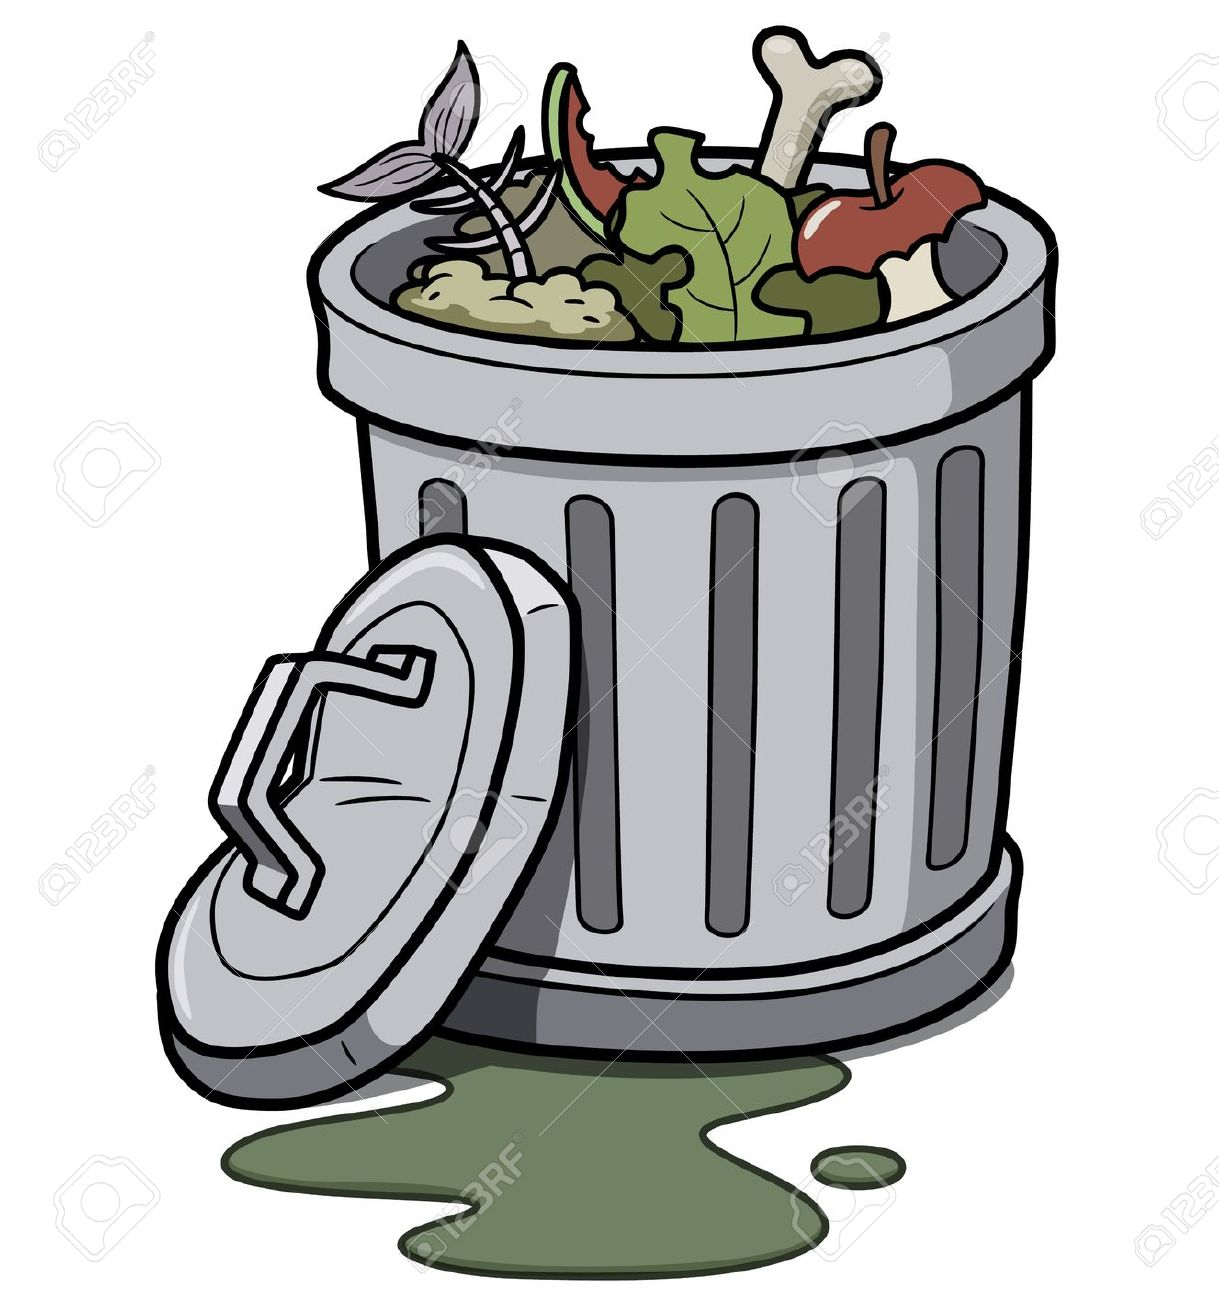 angellyrics topics 6 things funny things the governor dumpster clip art free trash dumpster clipart